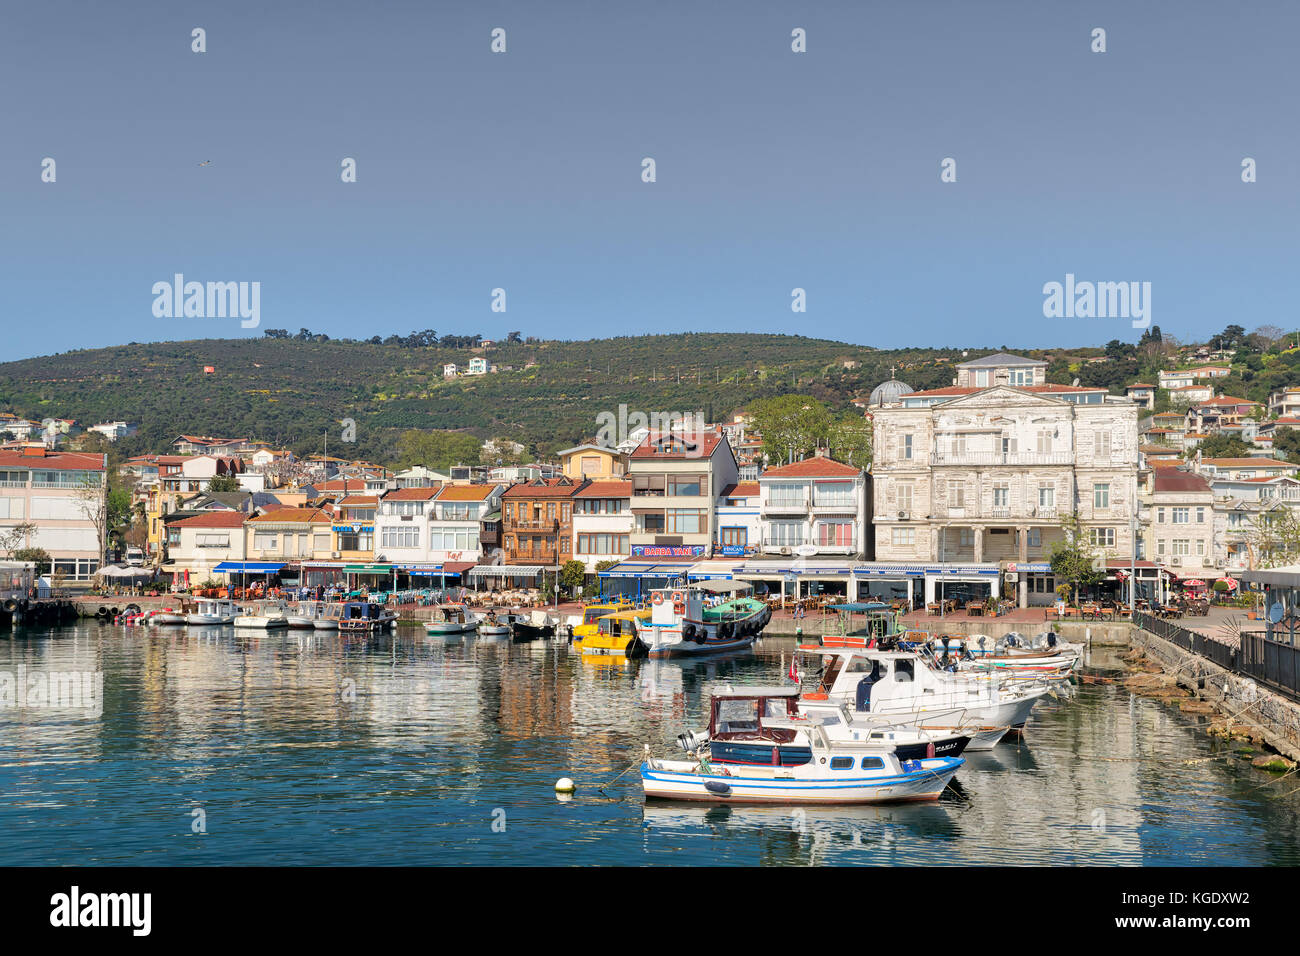 Istanbul, Turkey - April 27, 2017: View of Burgazada island from the sea with summer houses and a small mosque. - Stock Image